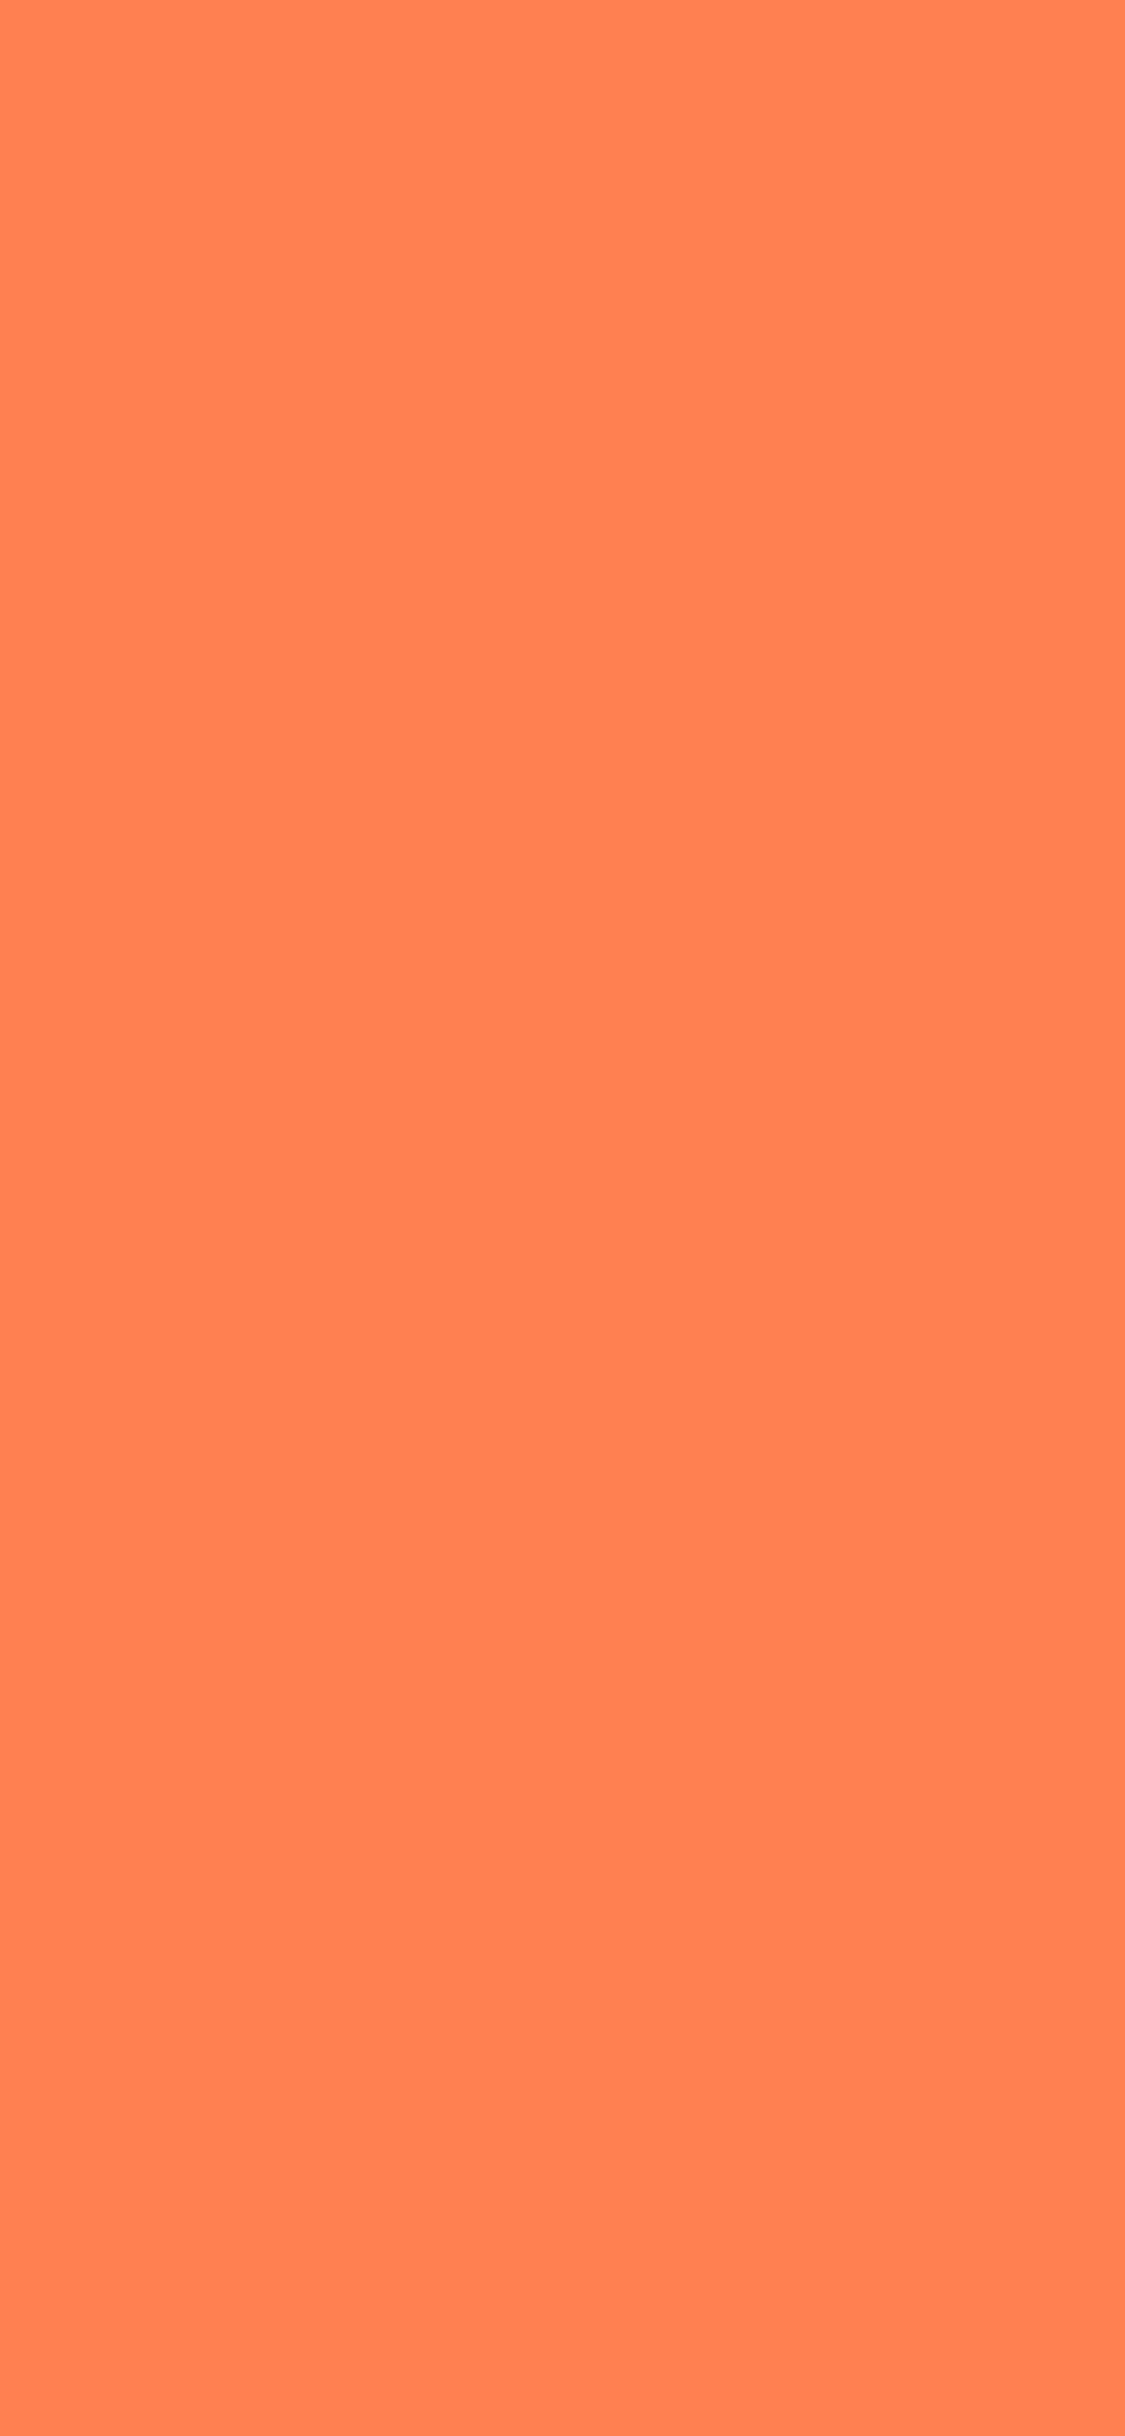 1125x2436 Coral Solid Color Background